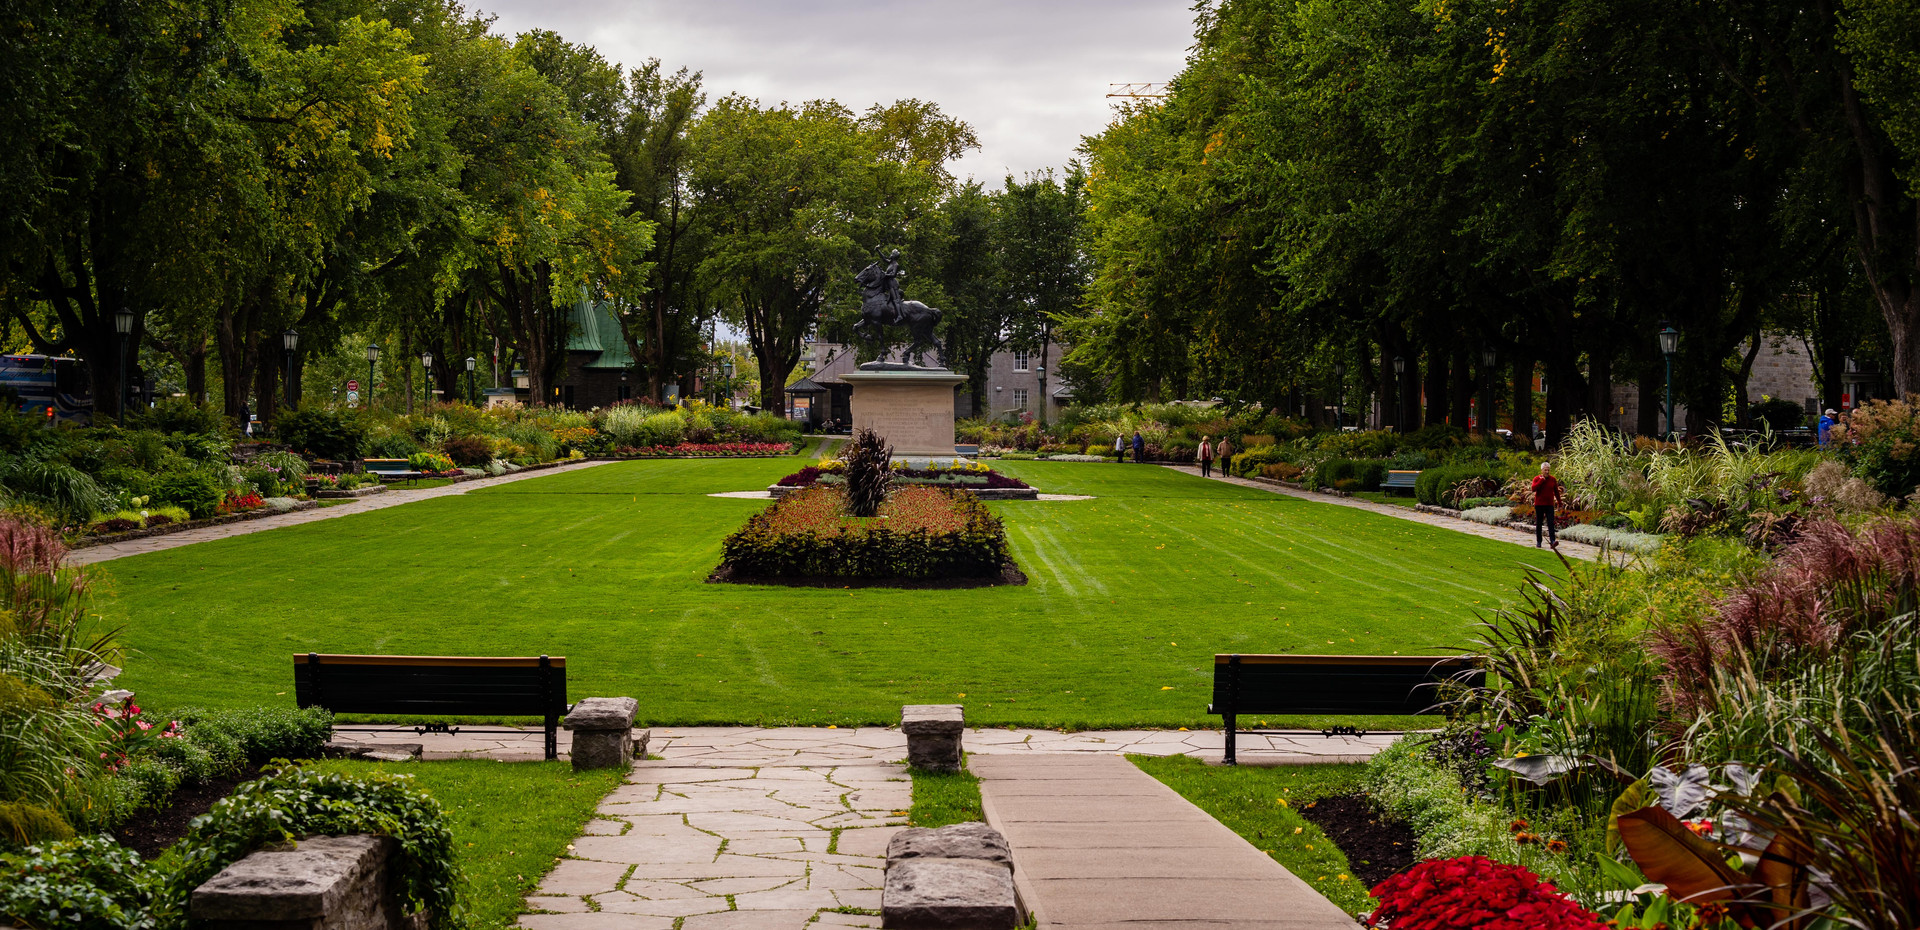 Visit the parks and grounds of the Plains of Abraham within the Battlefields Park